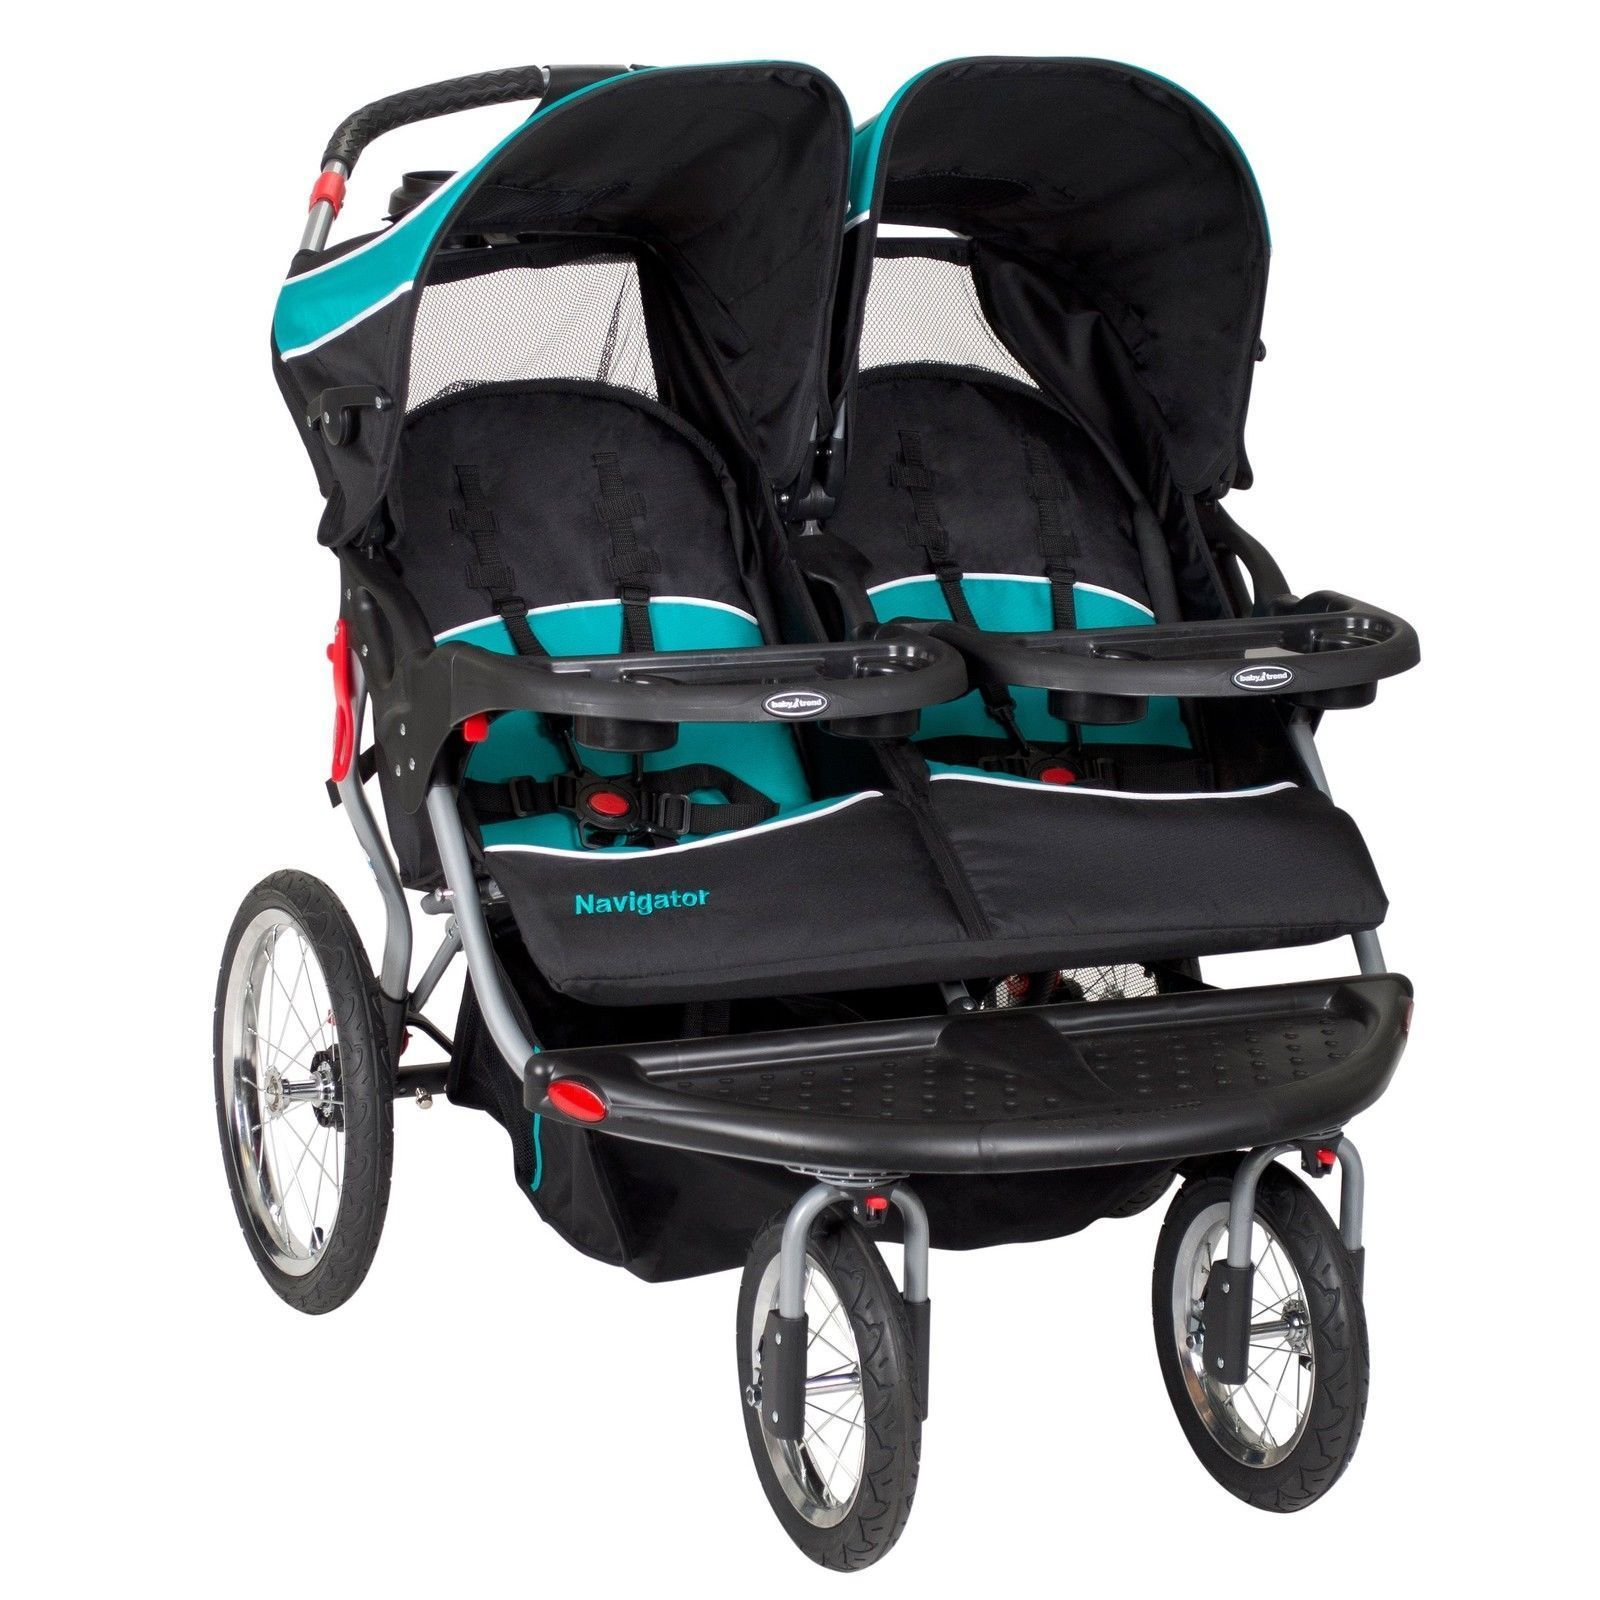 Grand Stroller Car Base Similar S Twins Baby Infant Stroller Car Car Seat Similar Items Stroller Car Seat Adapter Stroller baby Double Stroller With Car Seat